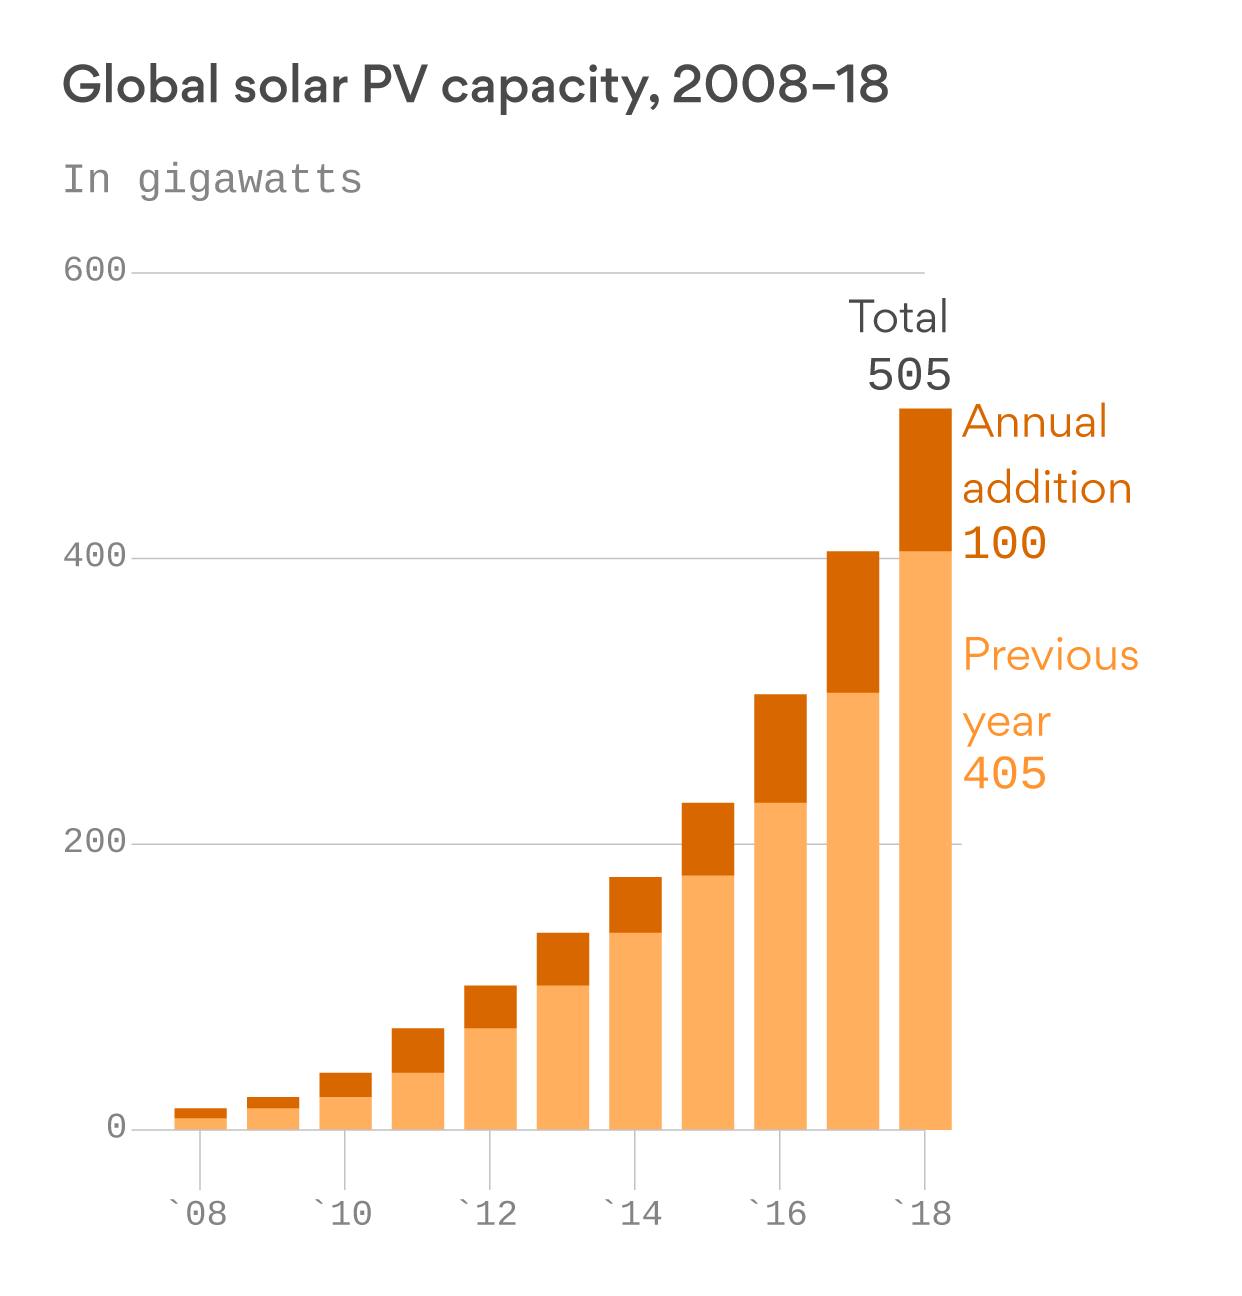 Solar energy use is making major headway around the world